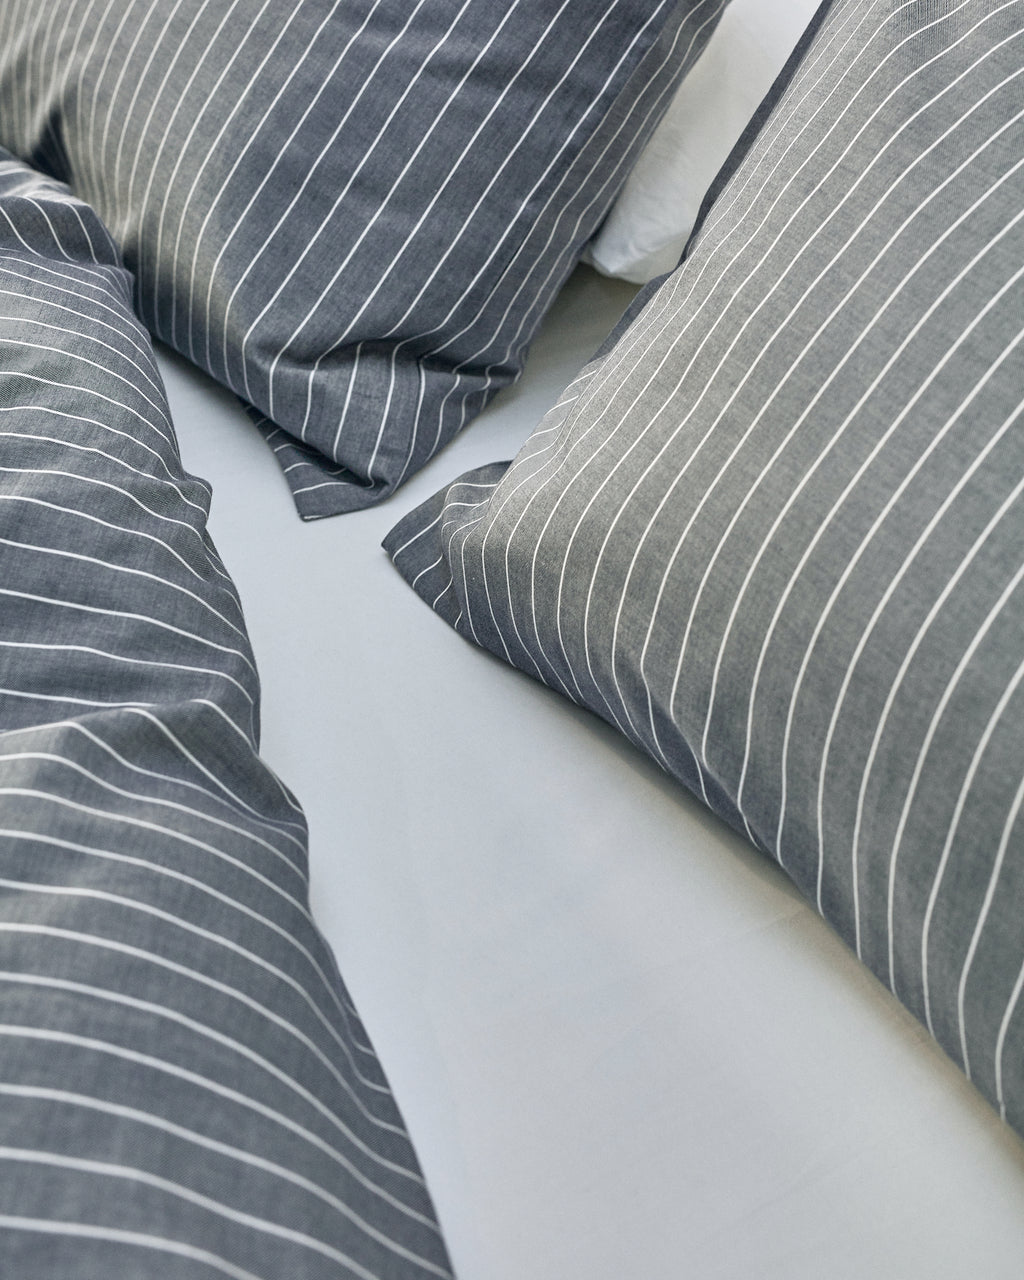 navy and white striped duvet cover set in front of white brick wall